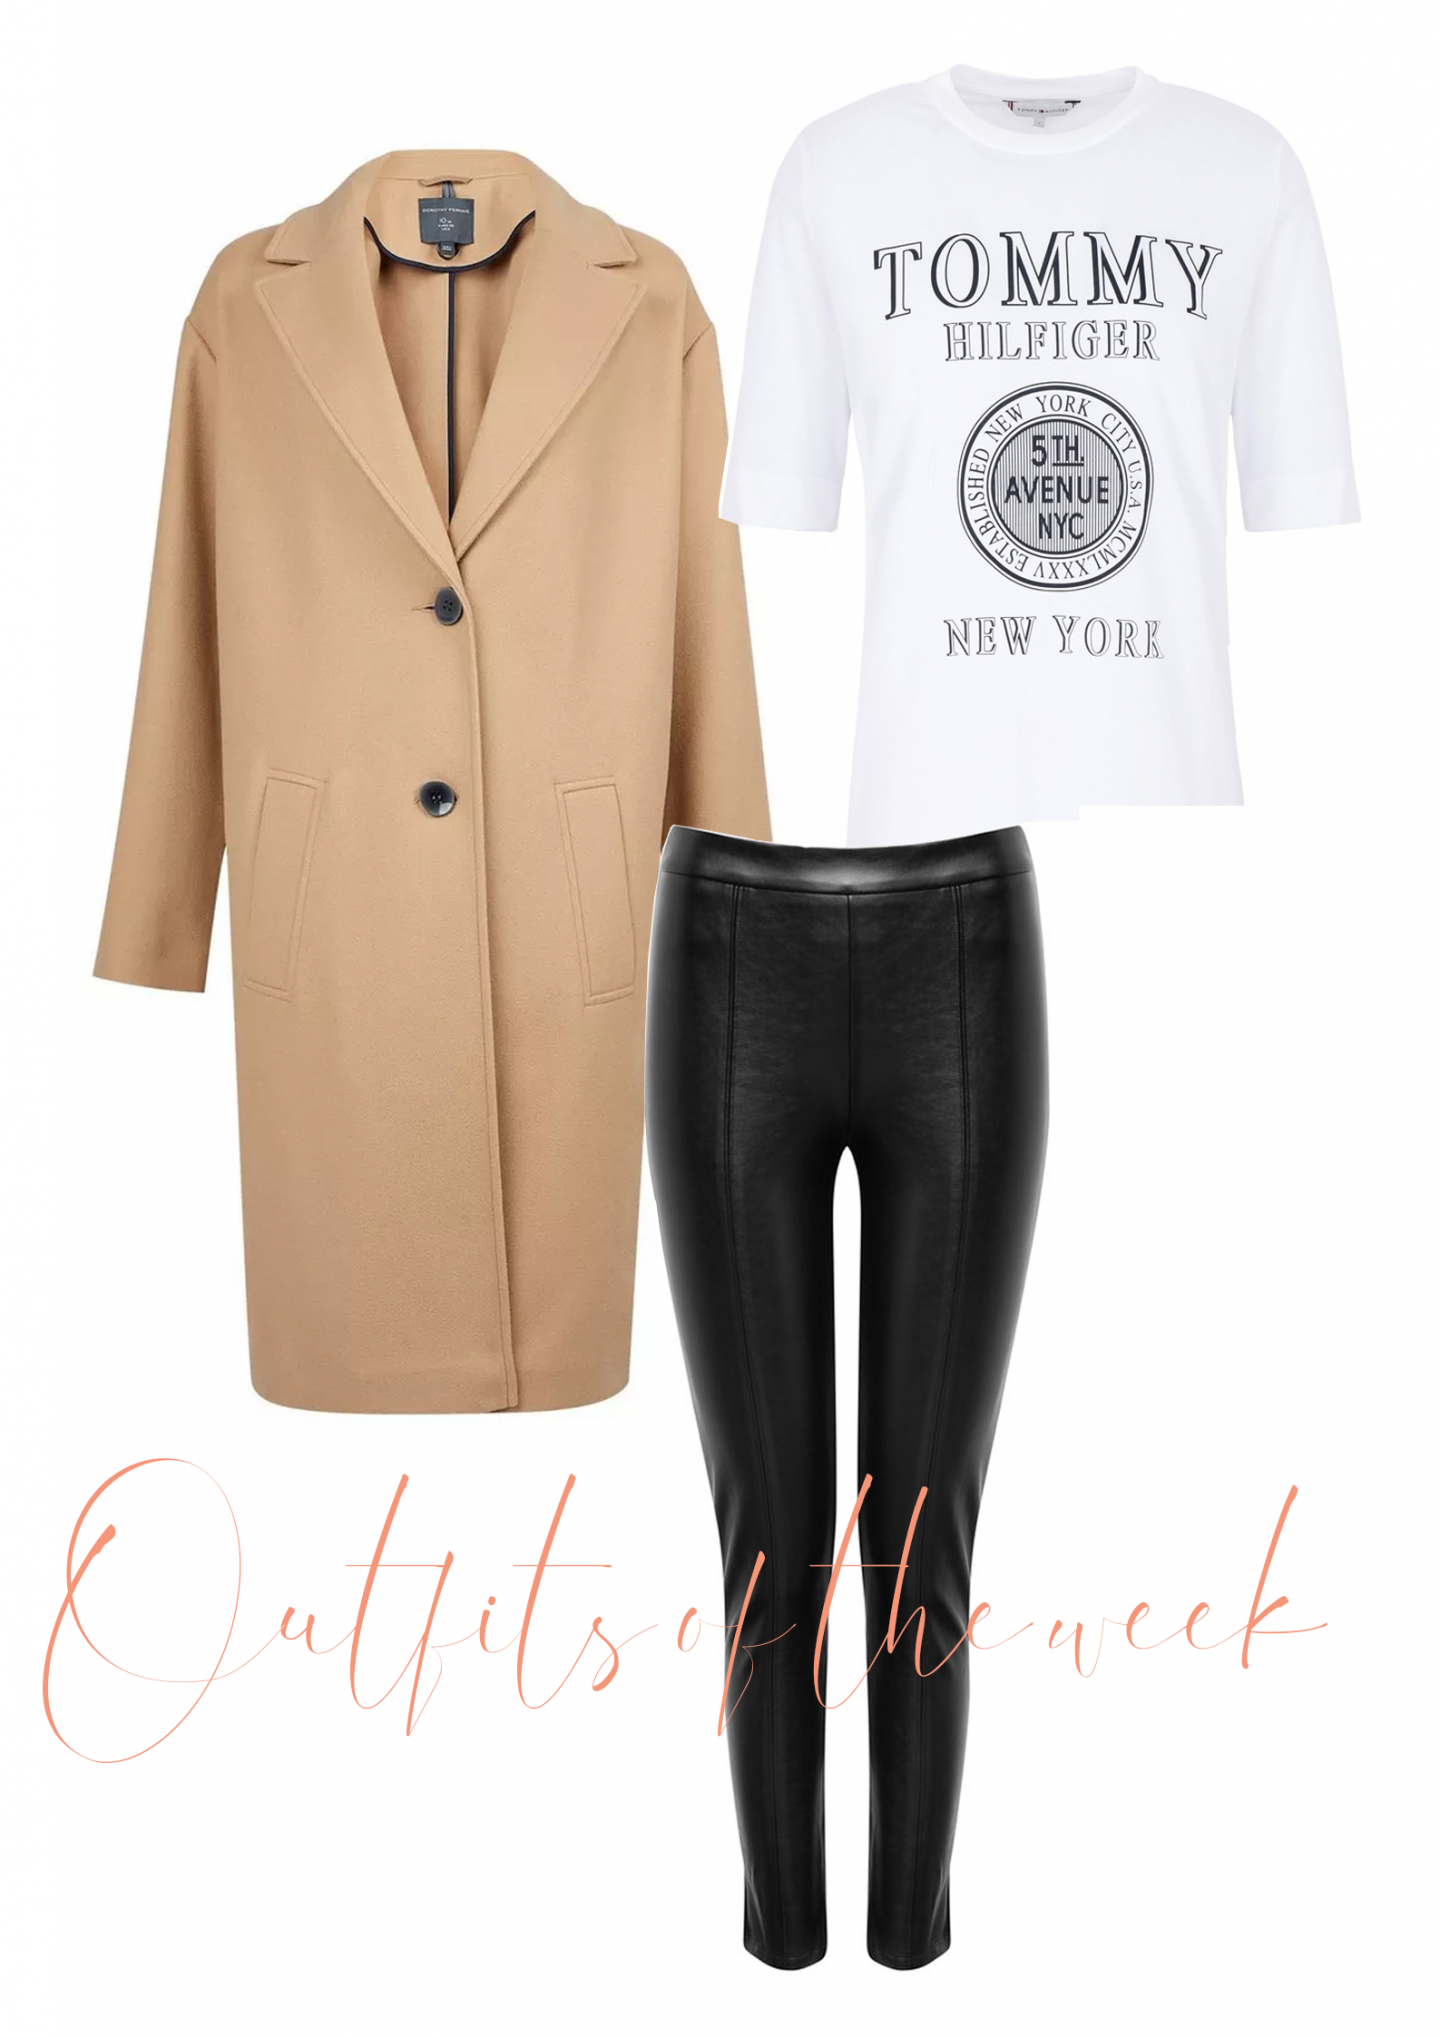 OUTFITS OF THE WEEK: 12TH SEPTEMBER 2019